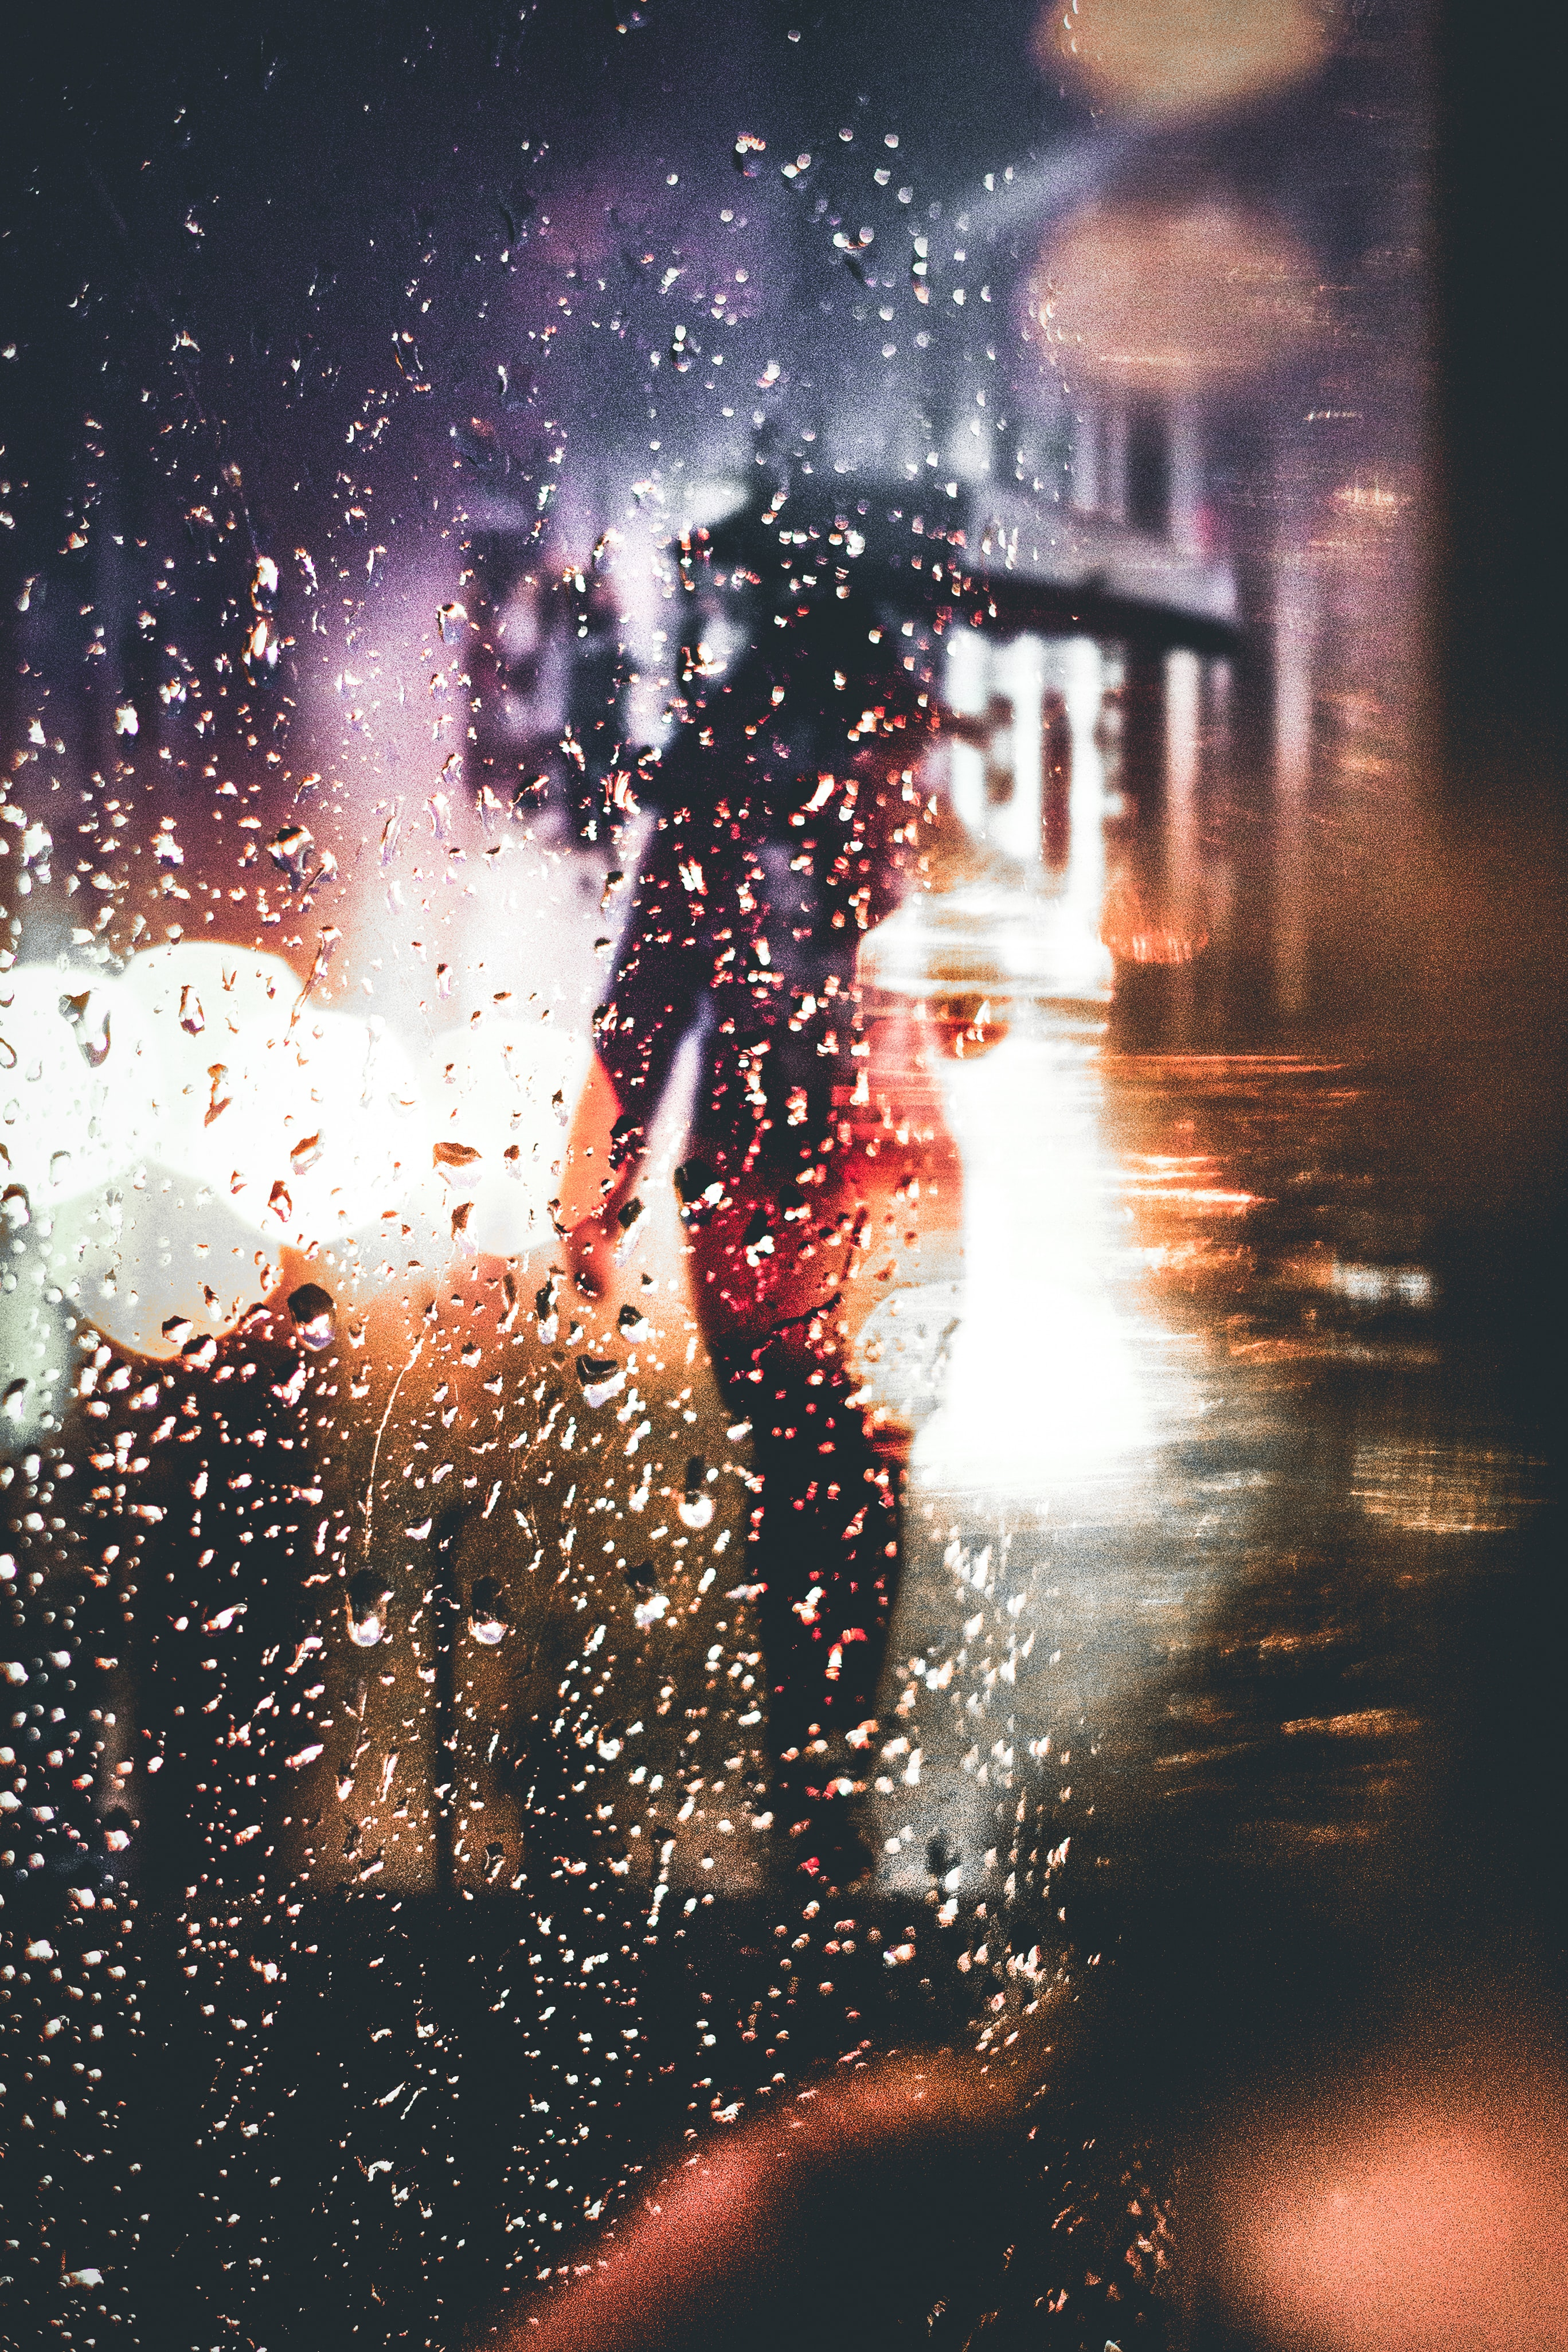 Silhouette of a person with an umbrella walking in the rain during night-time in Melbourne